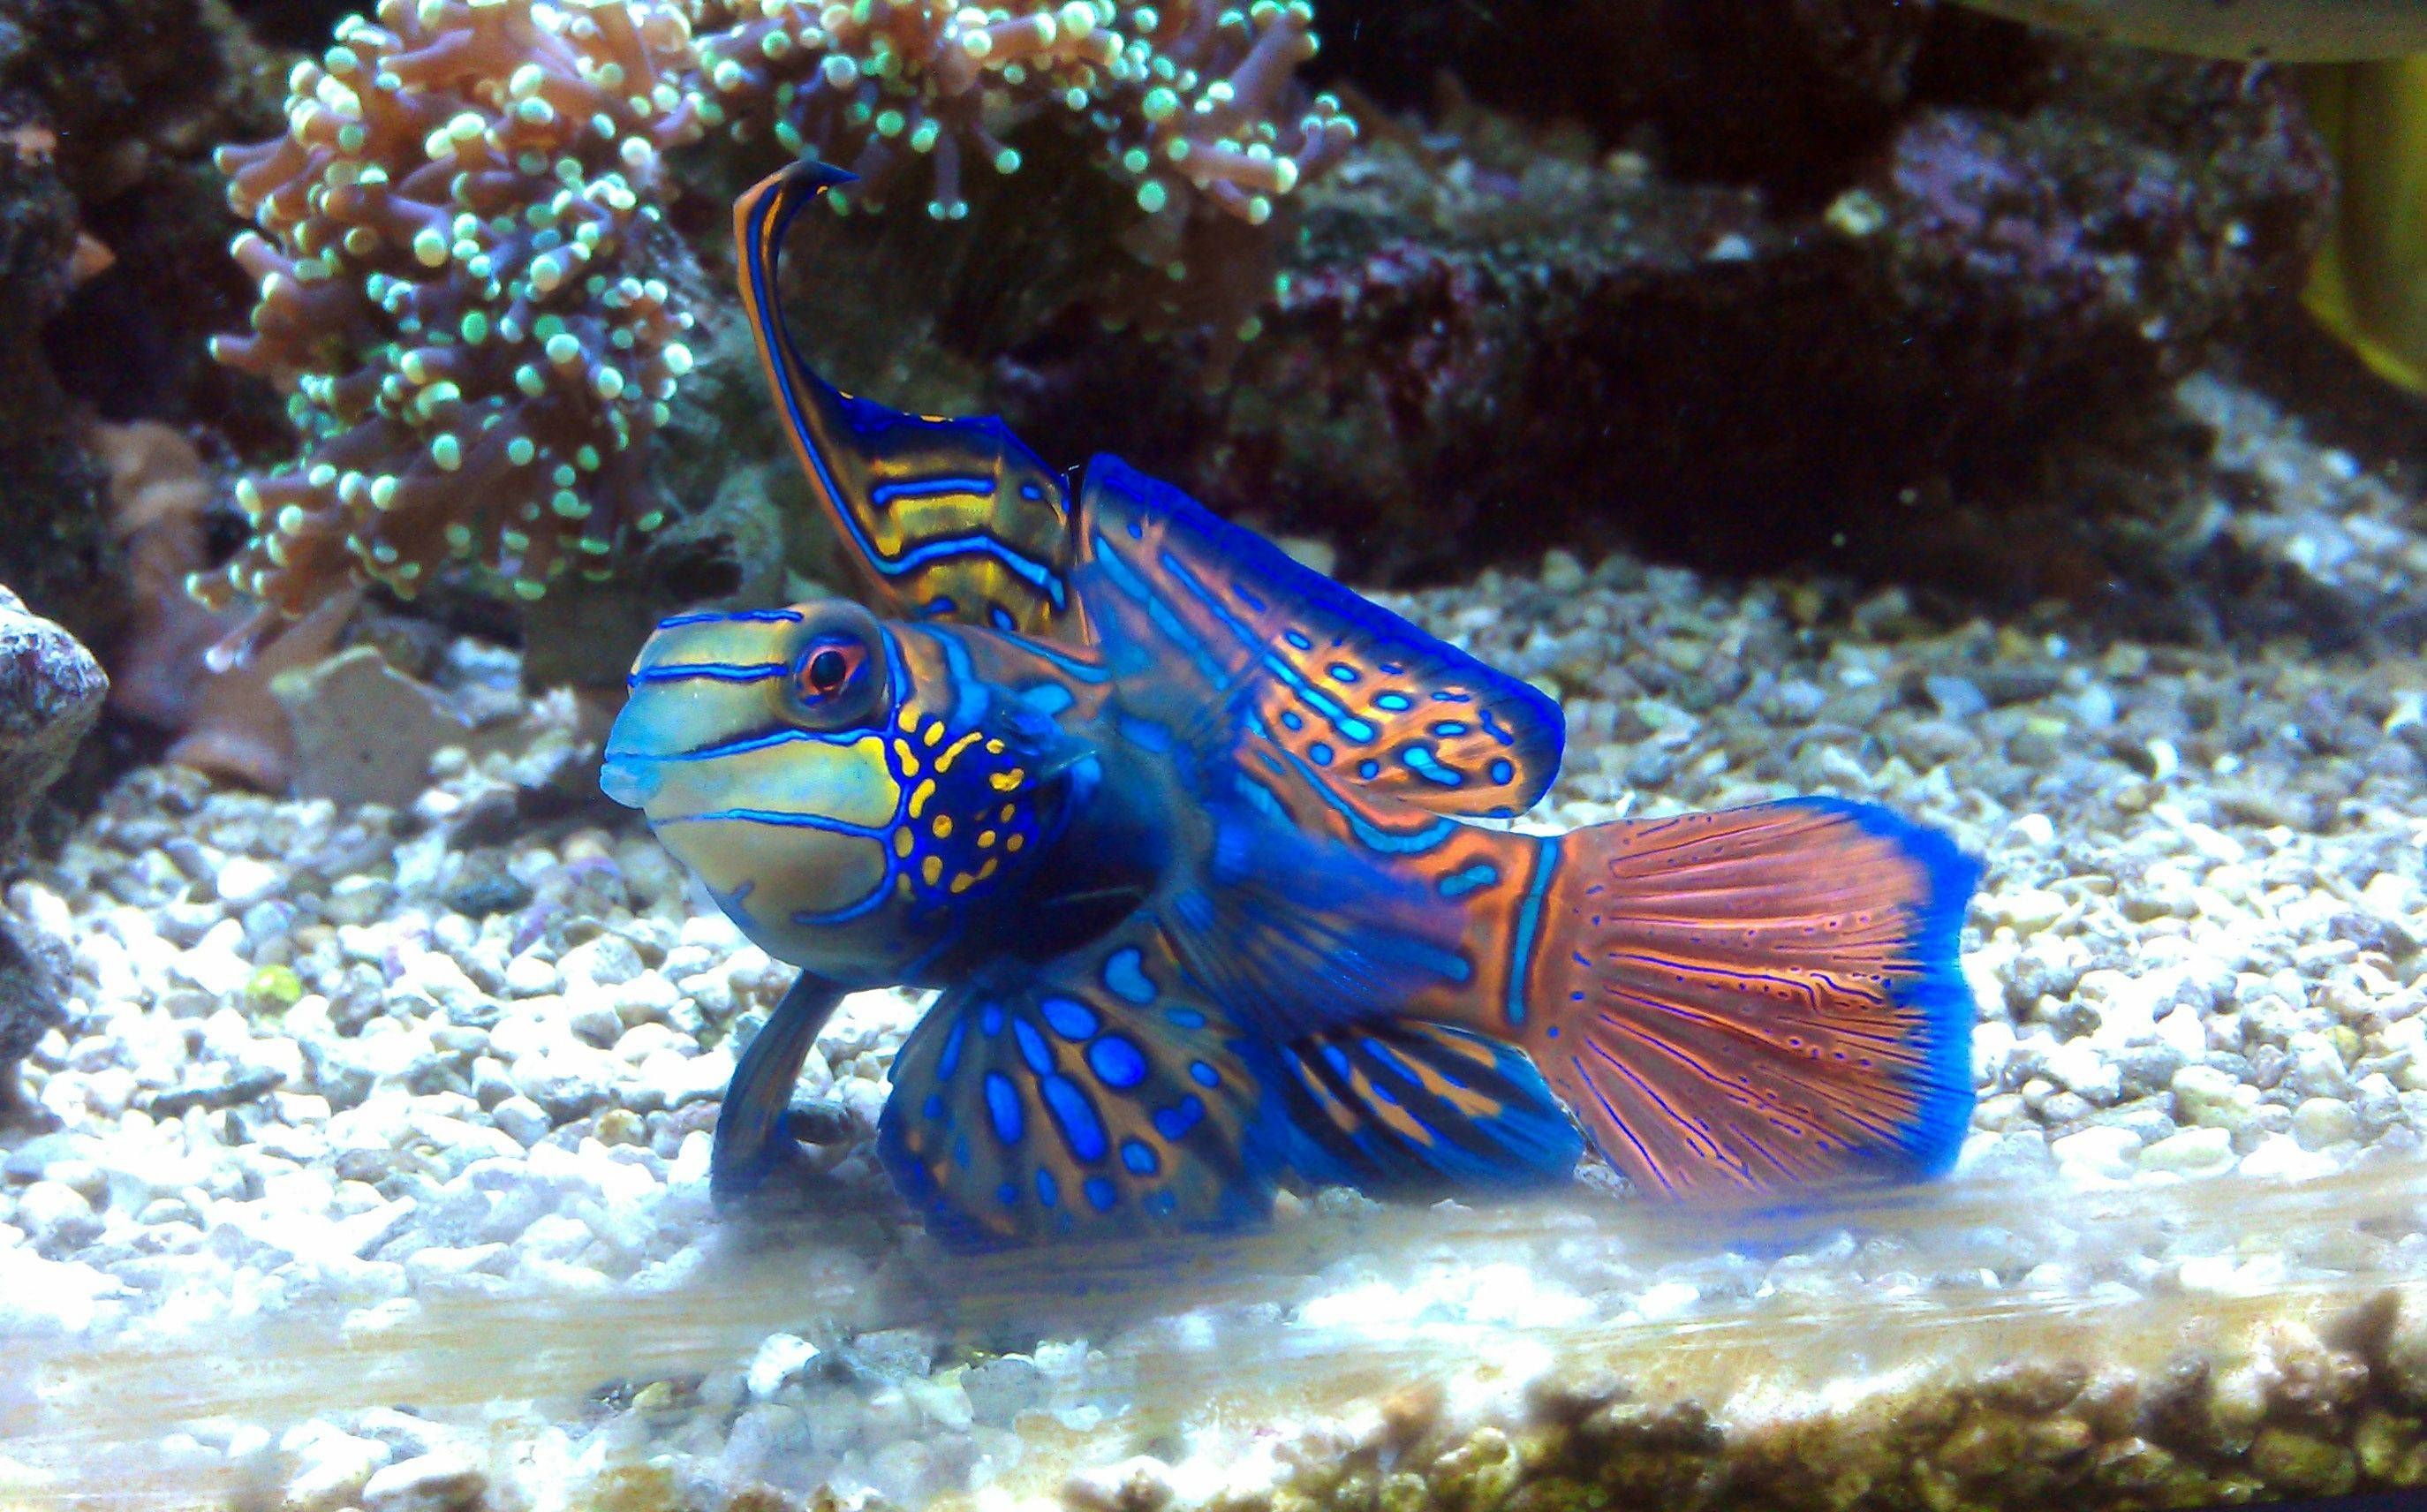 Fish With Human Face This Is Normal Here In Brazil R Pics Saltwater Aquarium Fish Marine Aquarium Fish Saltwater Aquarium